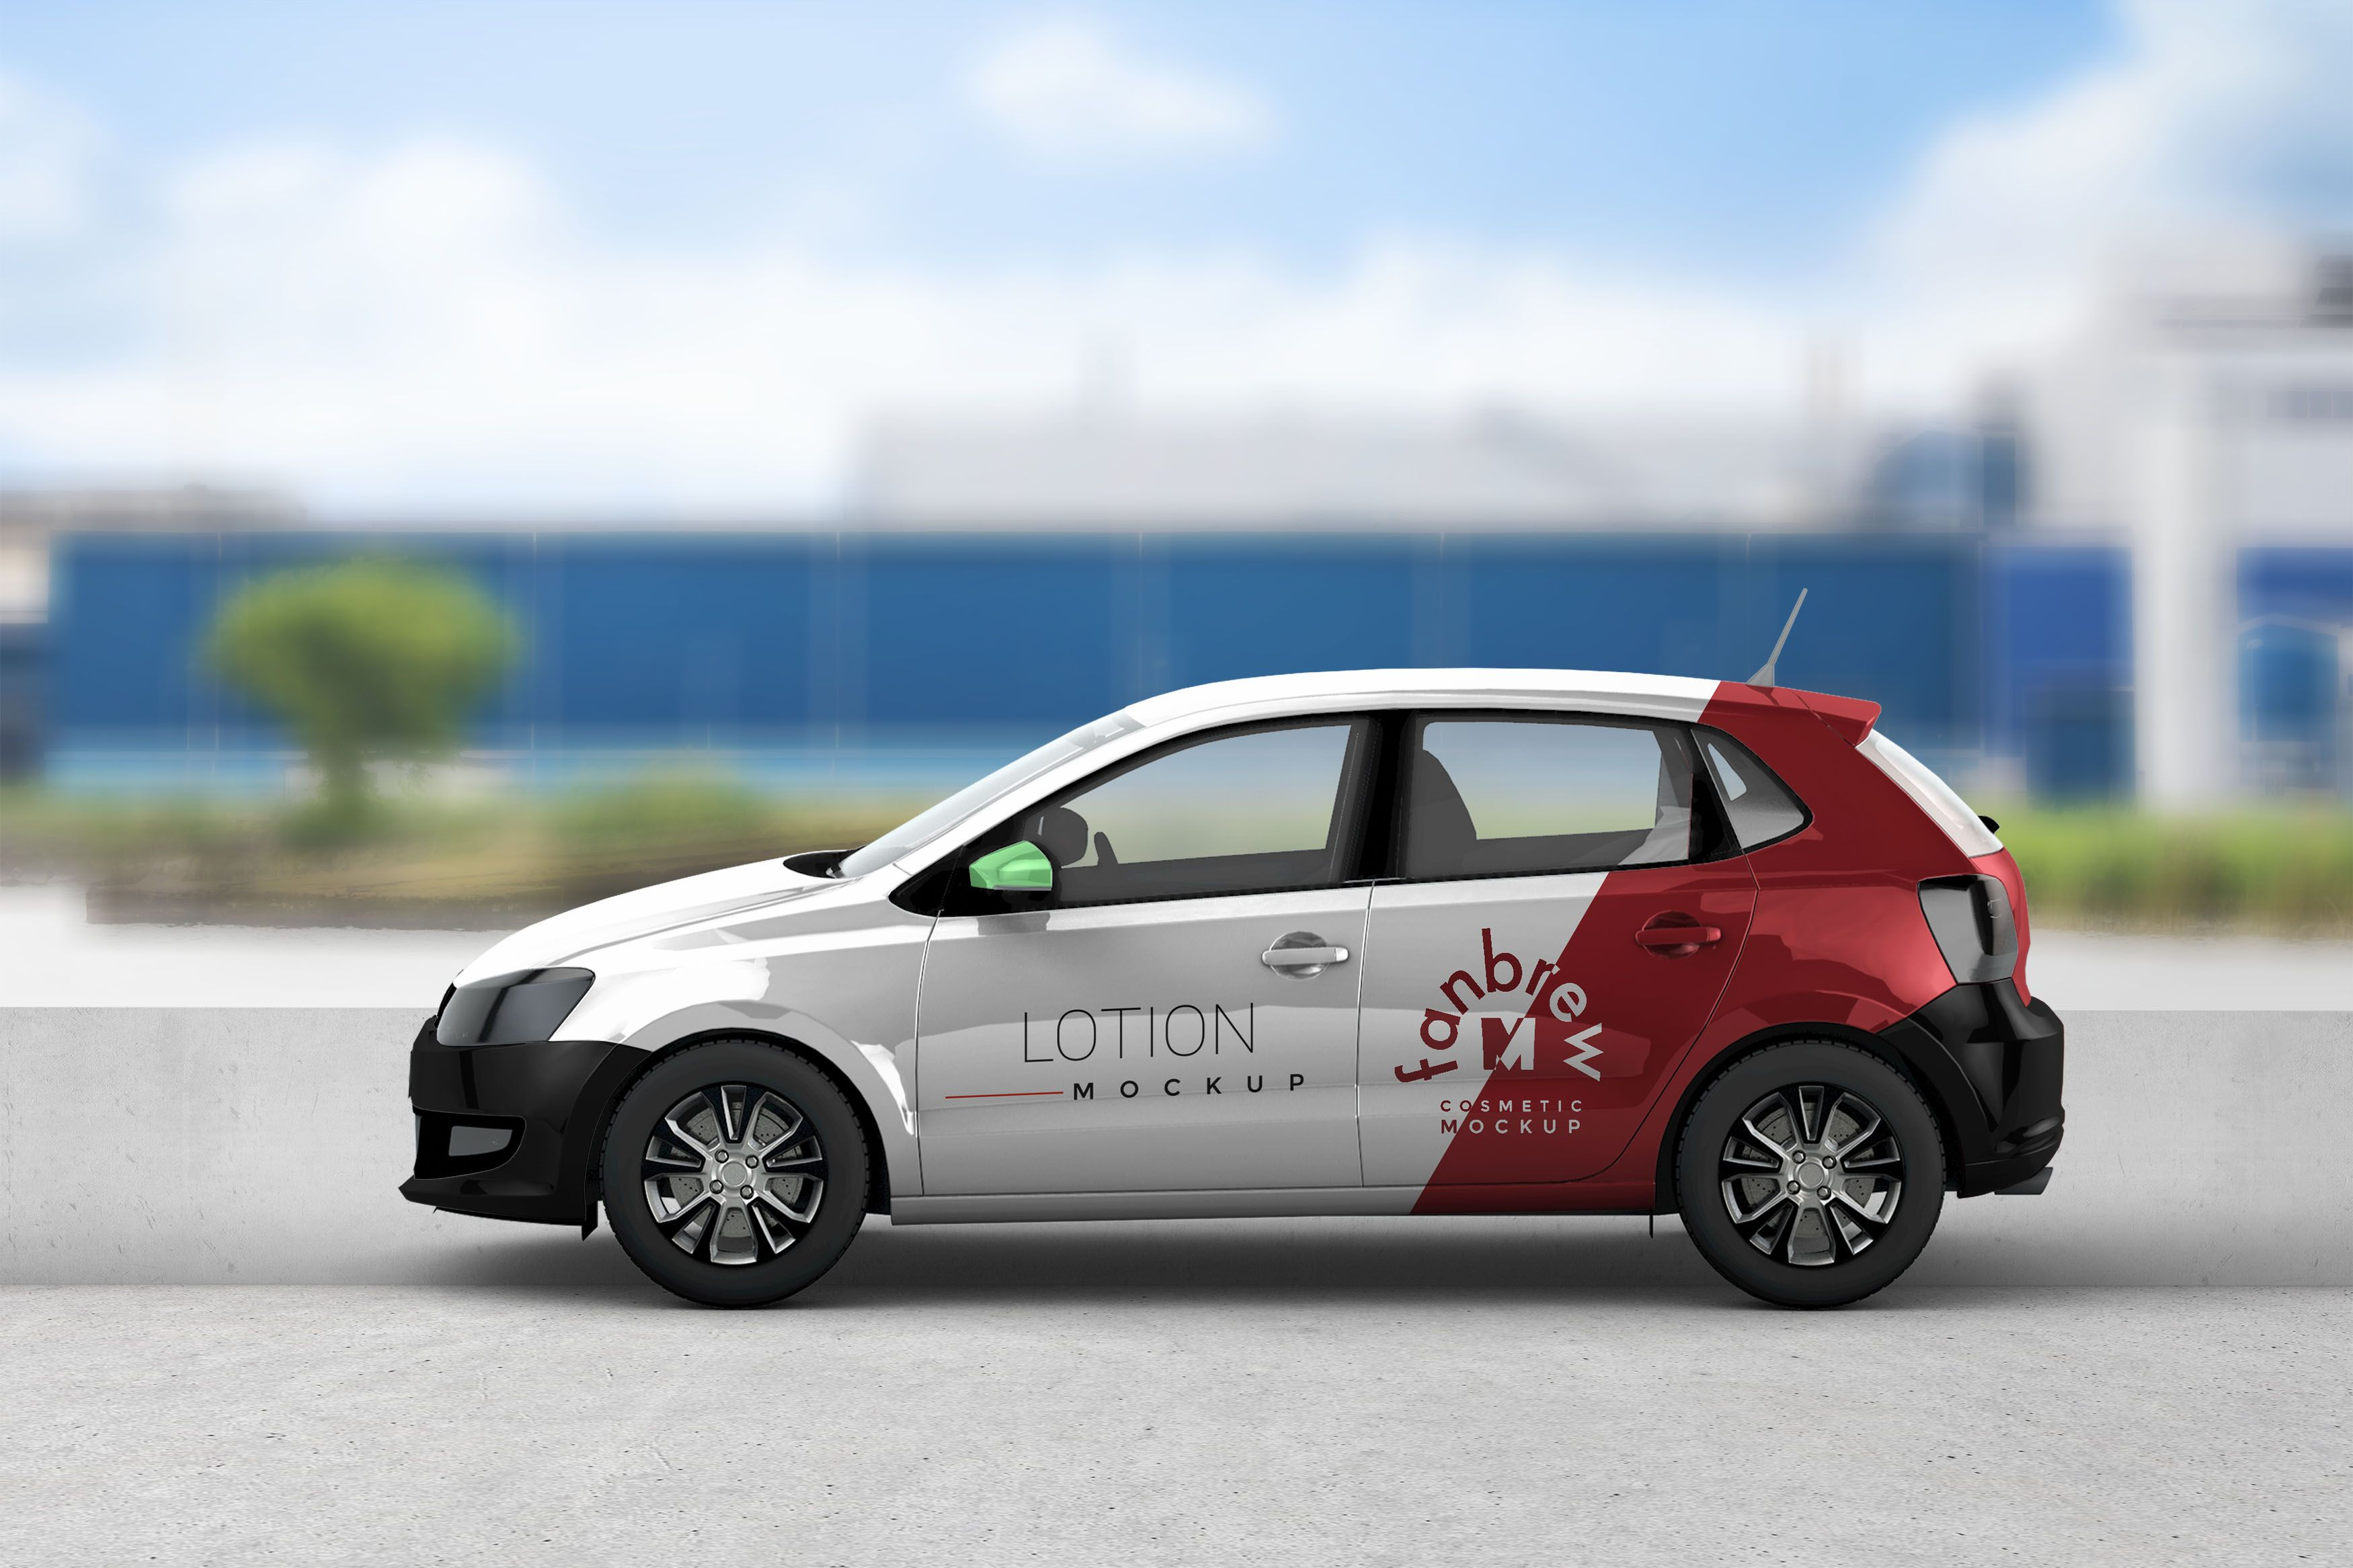 New Indica Car Wrap Mockup (With images) Car wrap design